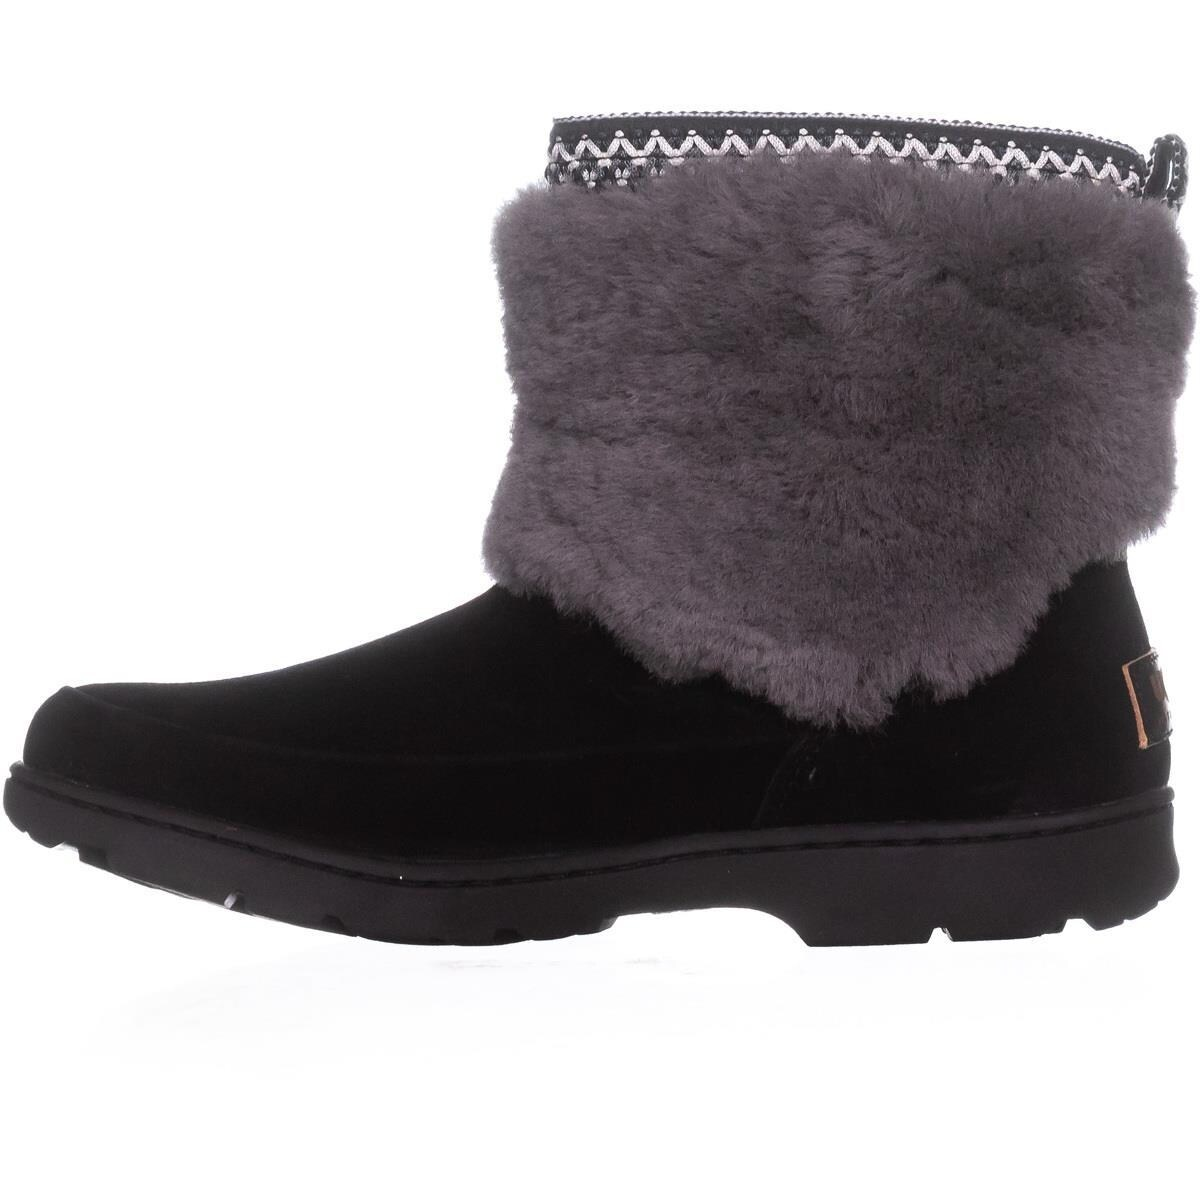 58108150f38 Shop UGG Australia Brie Side Pom Pom Pull On Boots